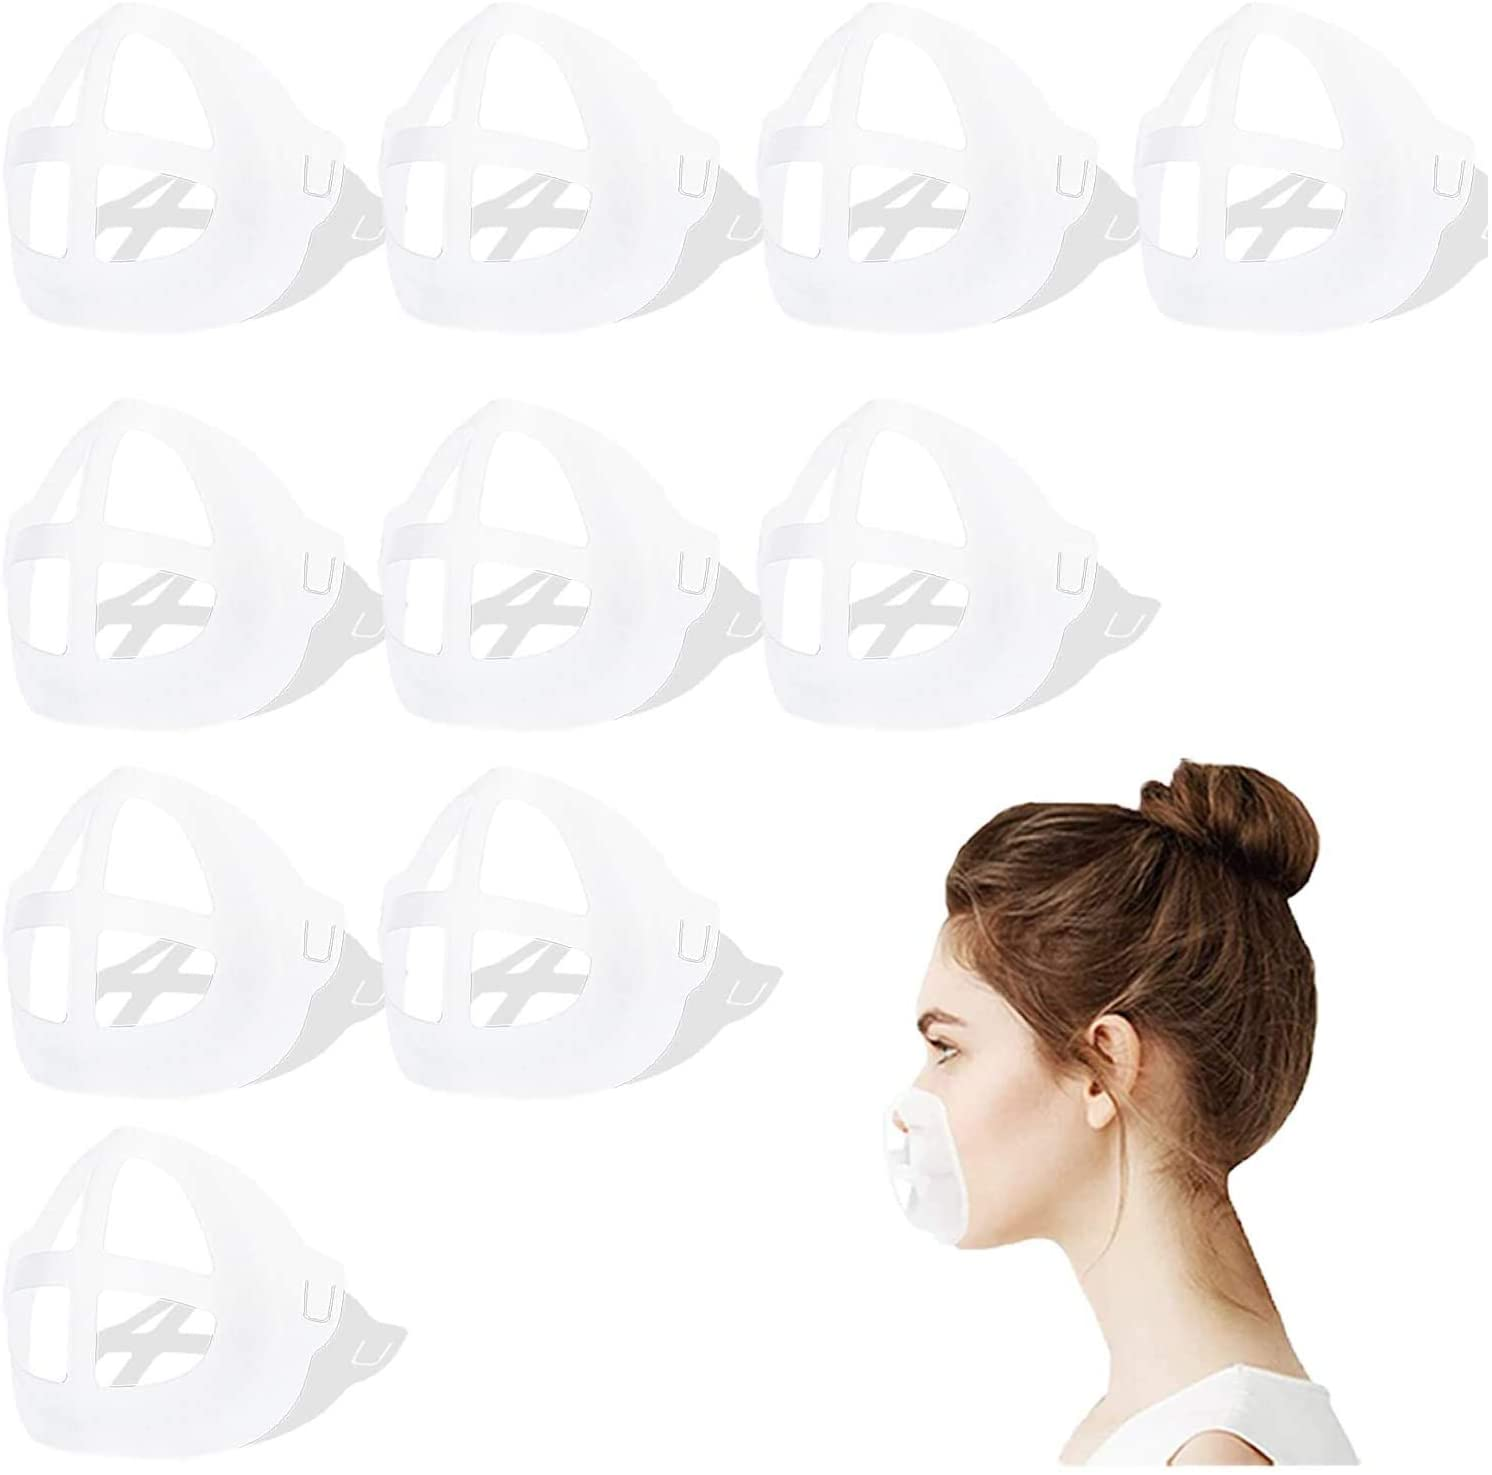 YINXN 【10PCS】 3D Mask Bracket,Washable Reusable Face Mask Inner Support Frame Face Bracket Comfy Lipstick Protector Stand Increase Breathing Space